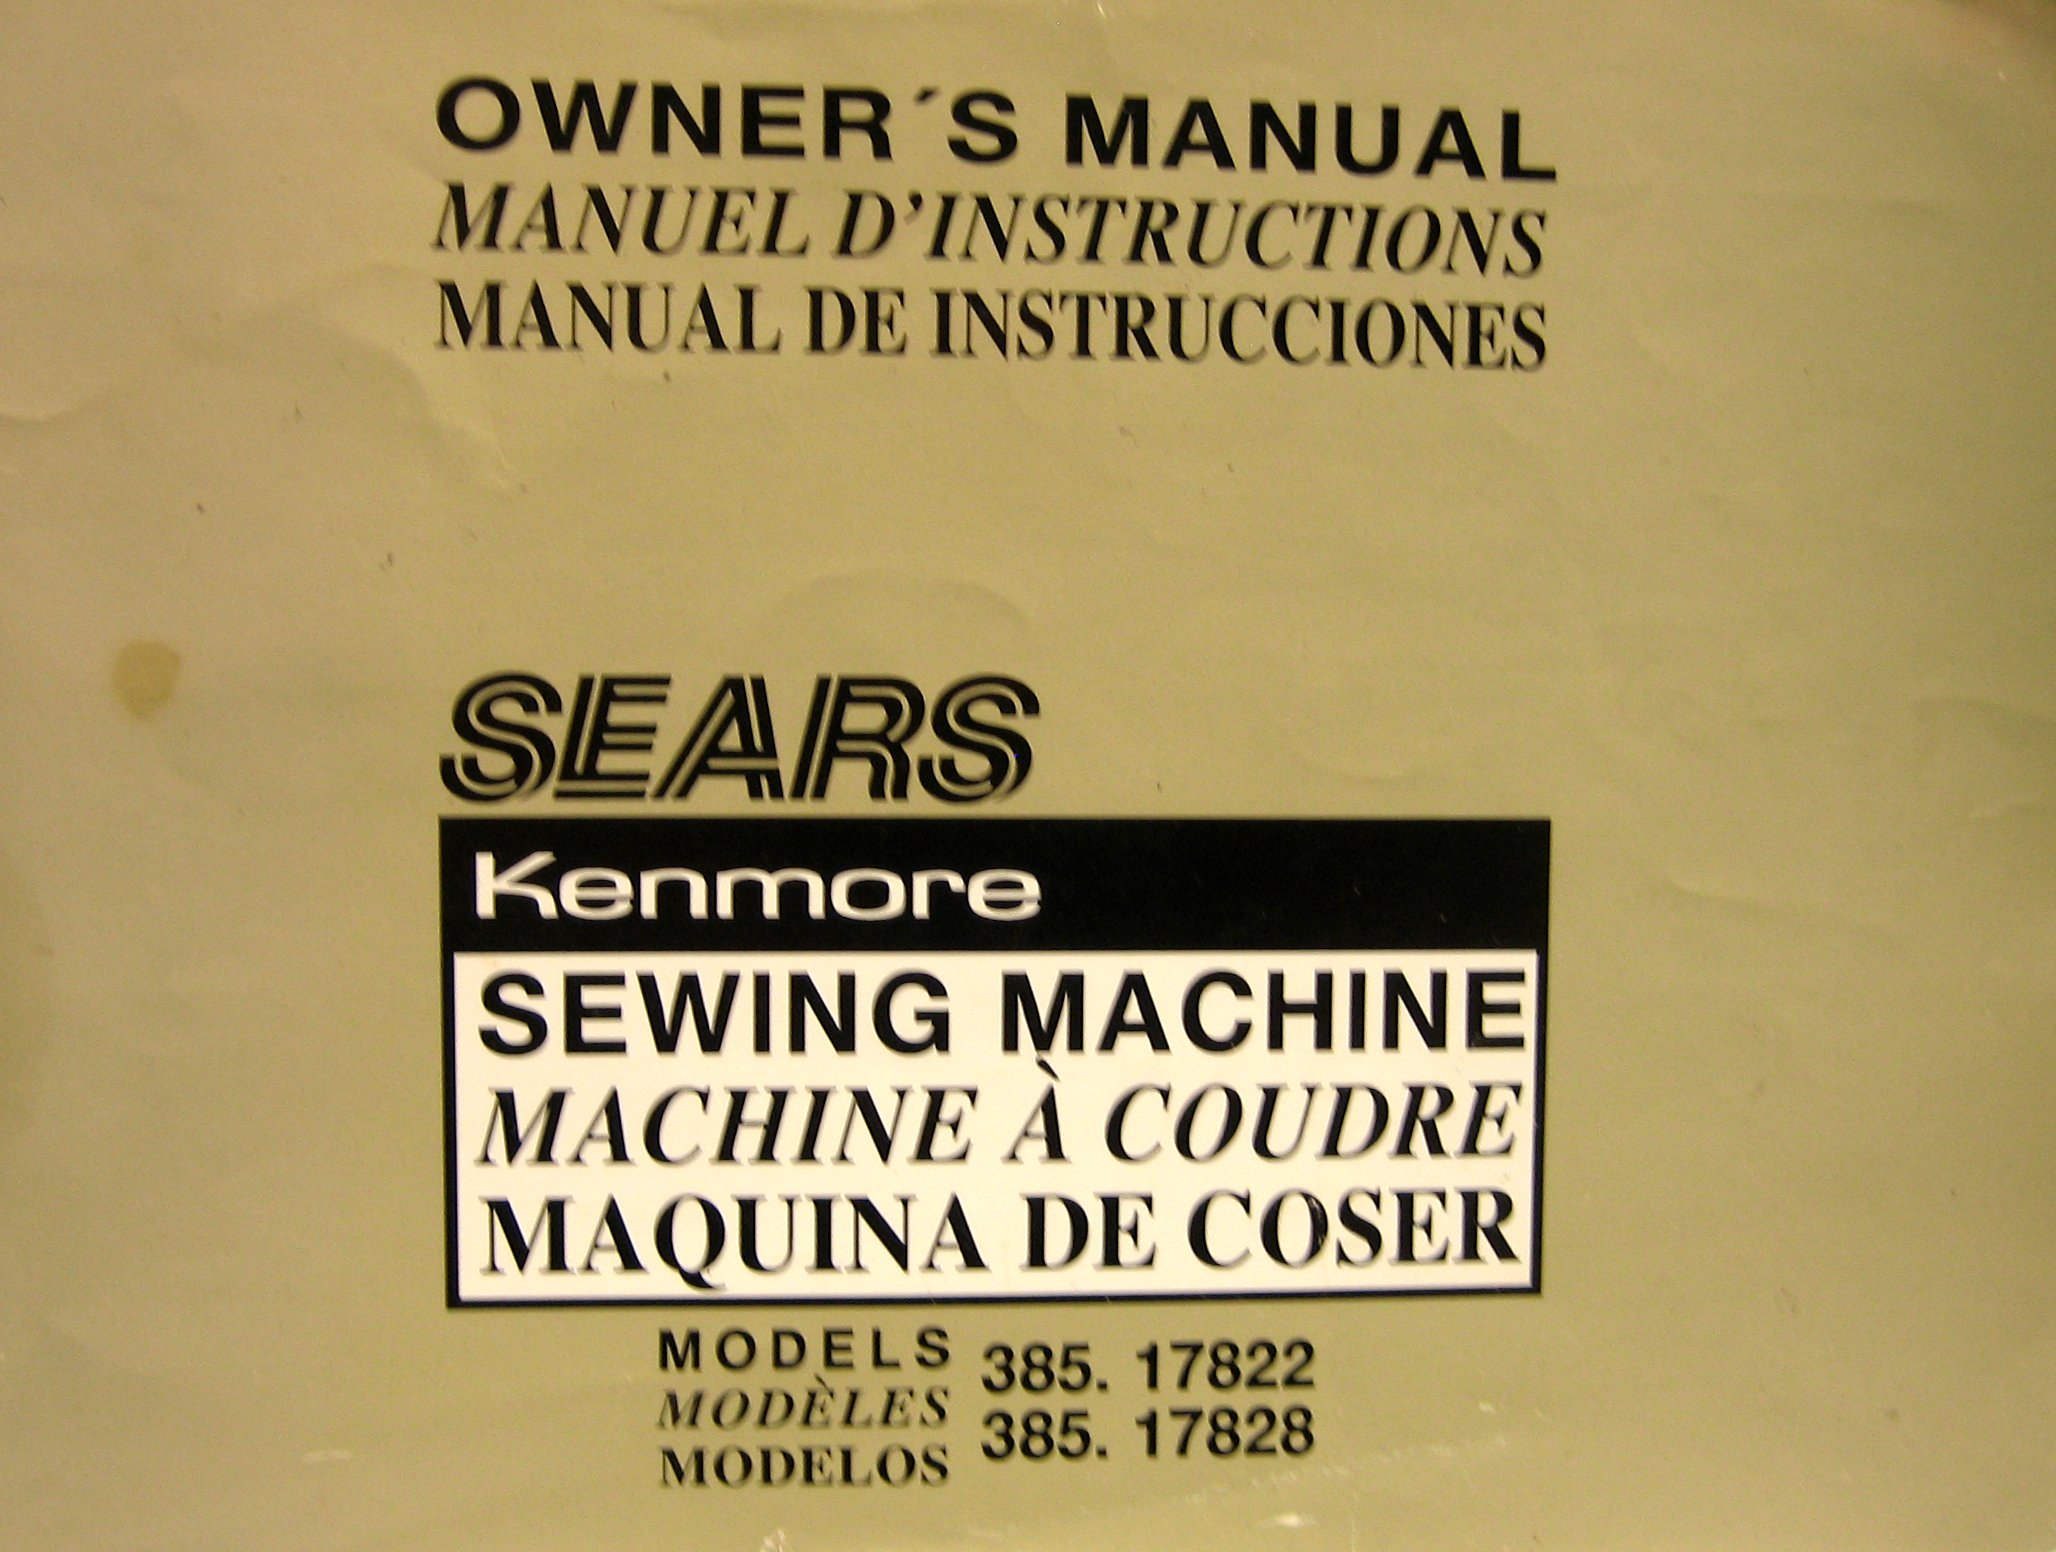 Owners Manual Sears Kenmore Sewing Machine, Model 385.17822 and 385.17828: Roebuck and Co. Sears: Amazon.com: Books